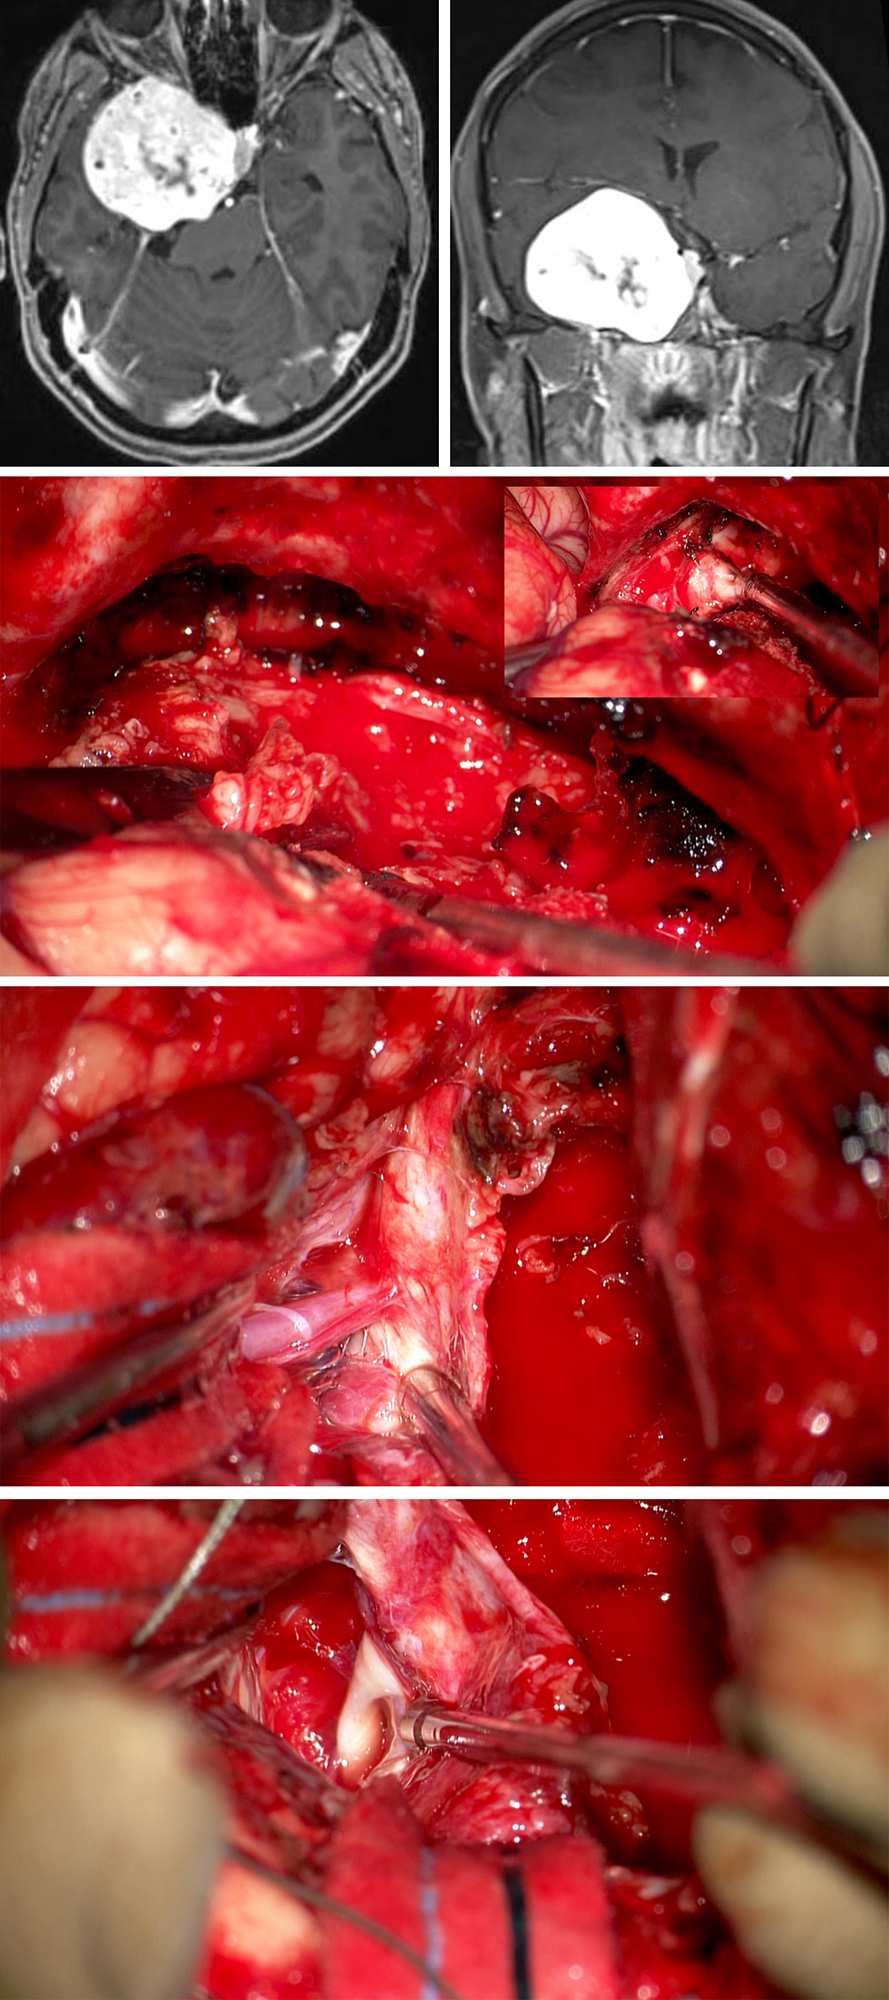 Figure 13: The images in the top row show the large cavernous sinus meningioma. A right-sided extended pterional approach was selected. Because of the large size of this tumor, a combination of both intra- and extradural routes was used. The lateral wall of the sinus was incised intradurally (second row of images), tumor debulked, and the trigeminal nerves identified (inset image). Upon deflation of the sinus wall, the adherent middle cerebral artery branches were found (third row). Upon near gross total removal of the tumor, CN III was apparent (bottom row of images).